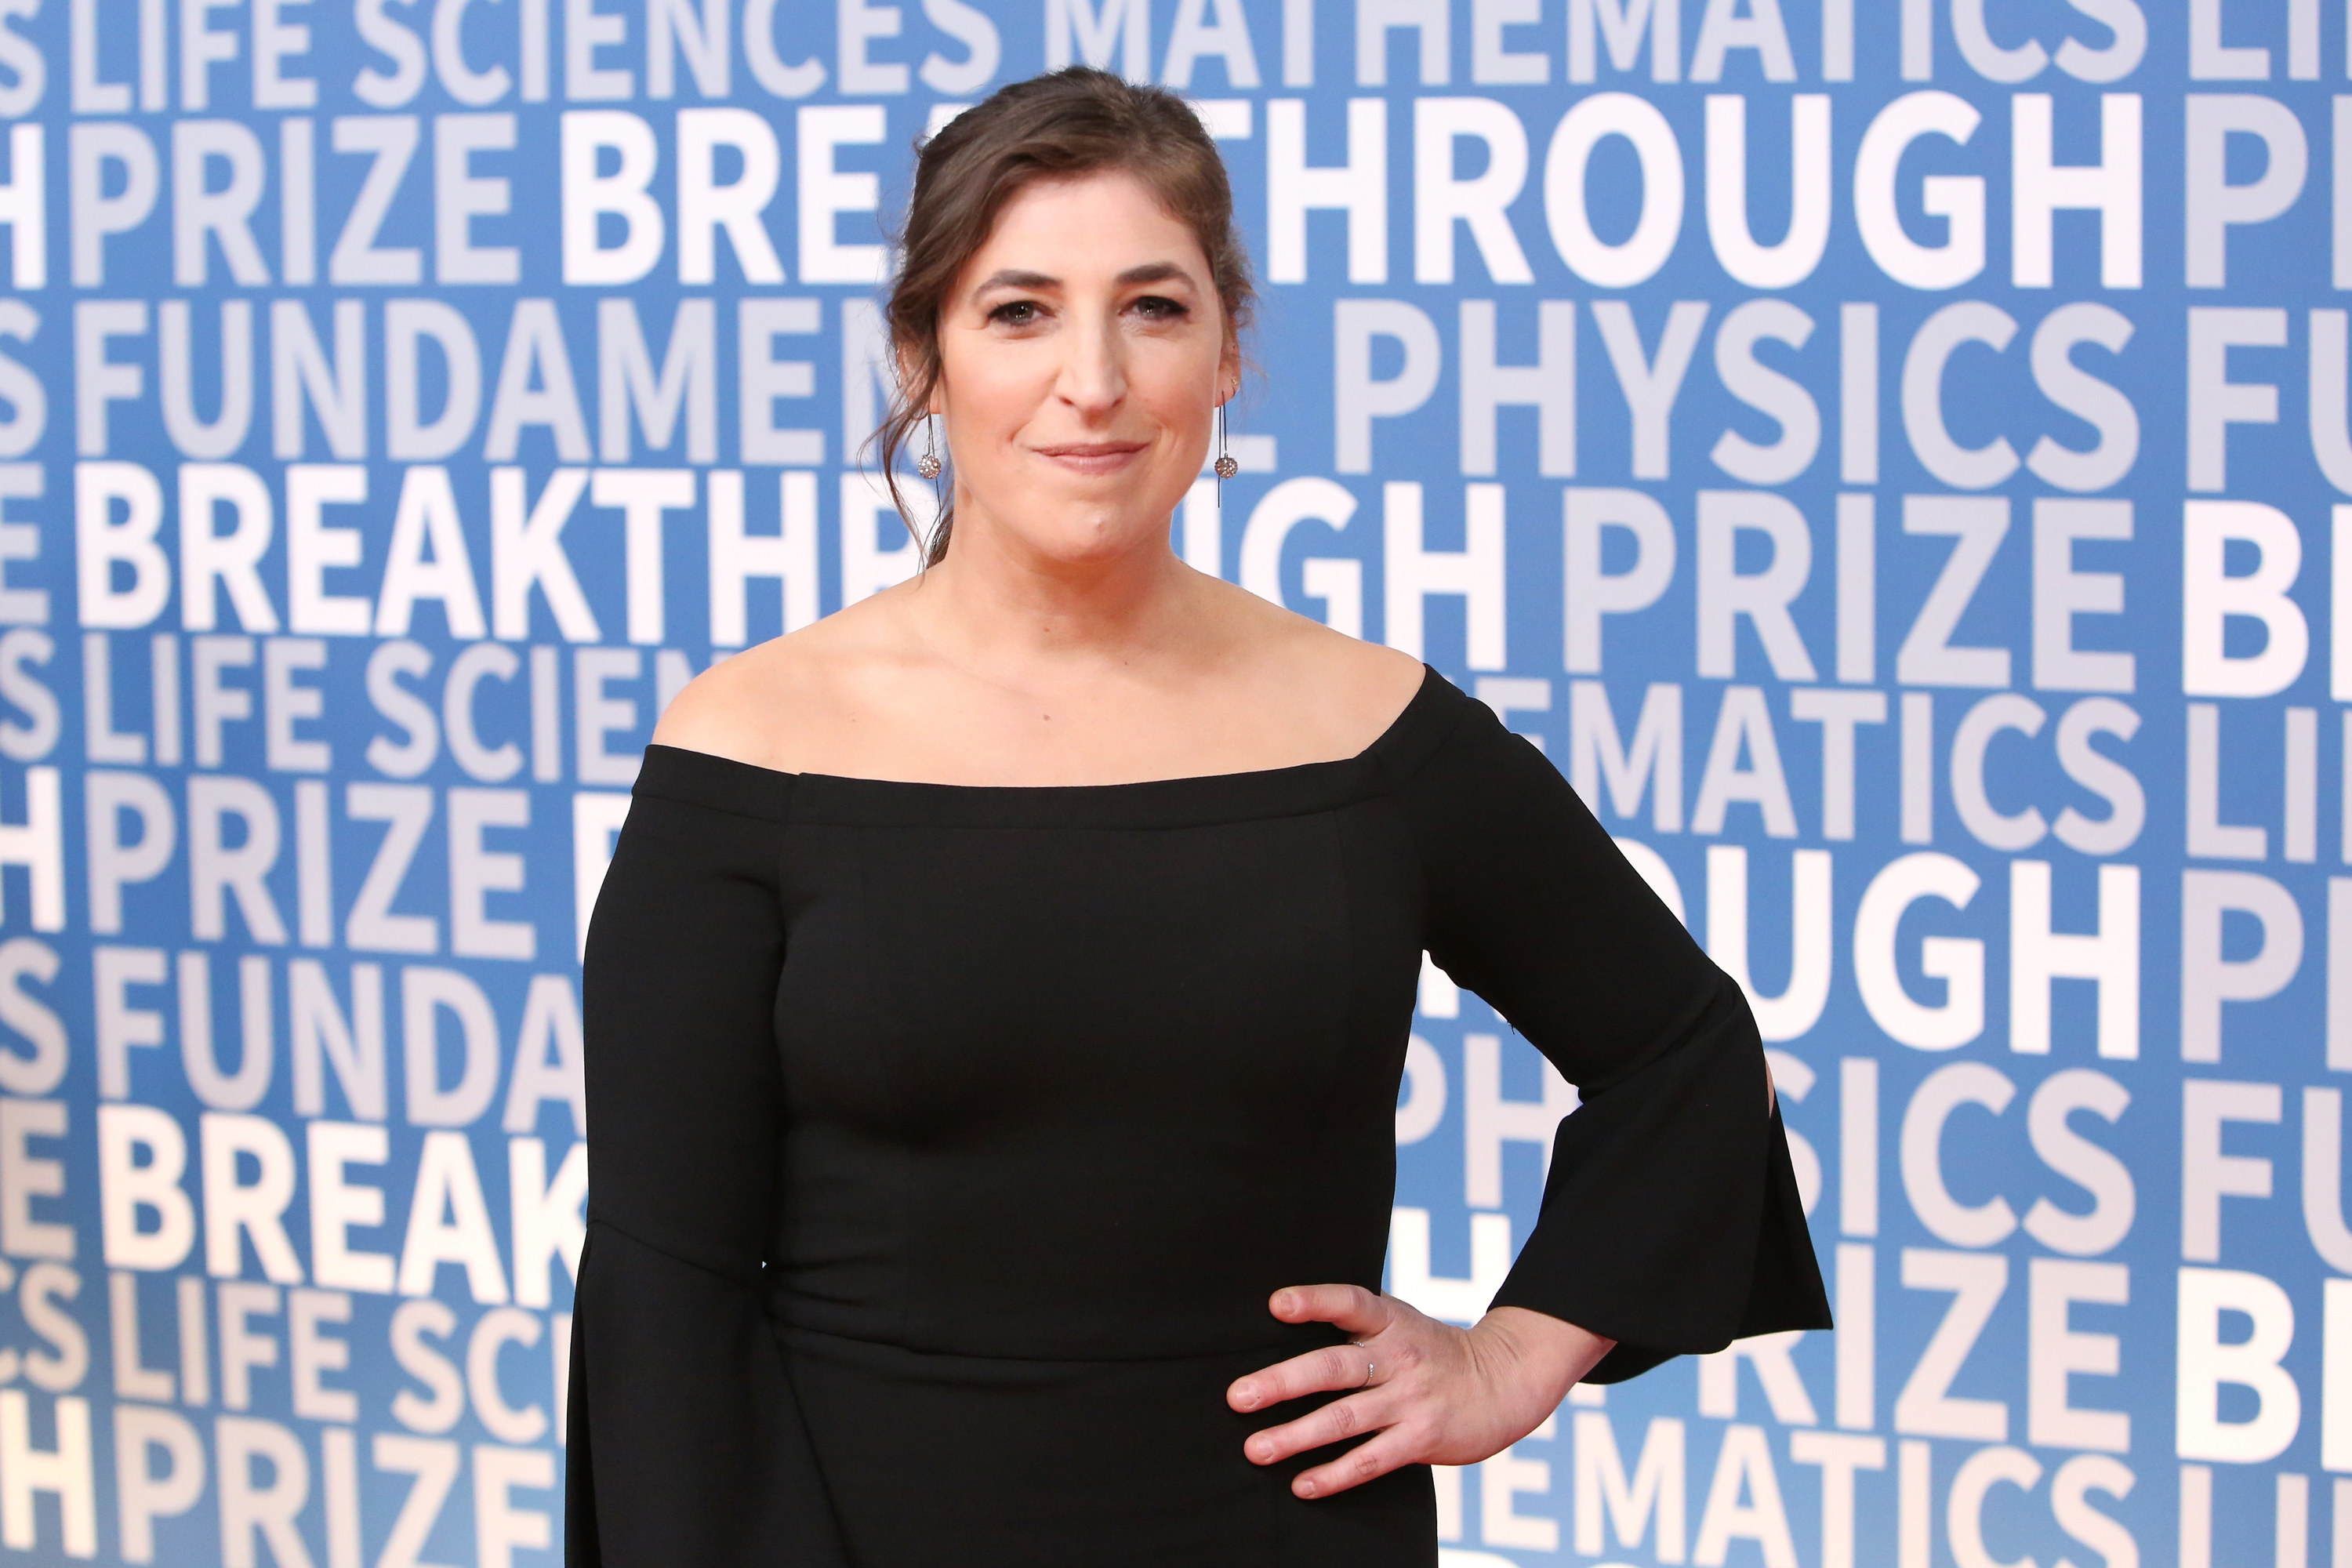 Mayim poses at an event